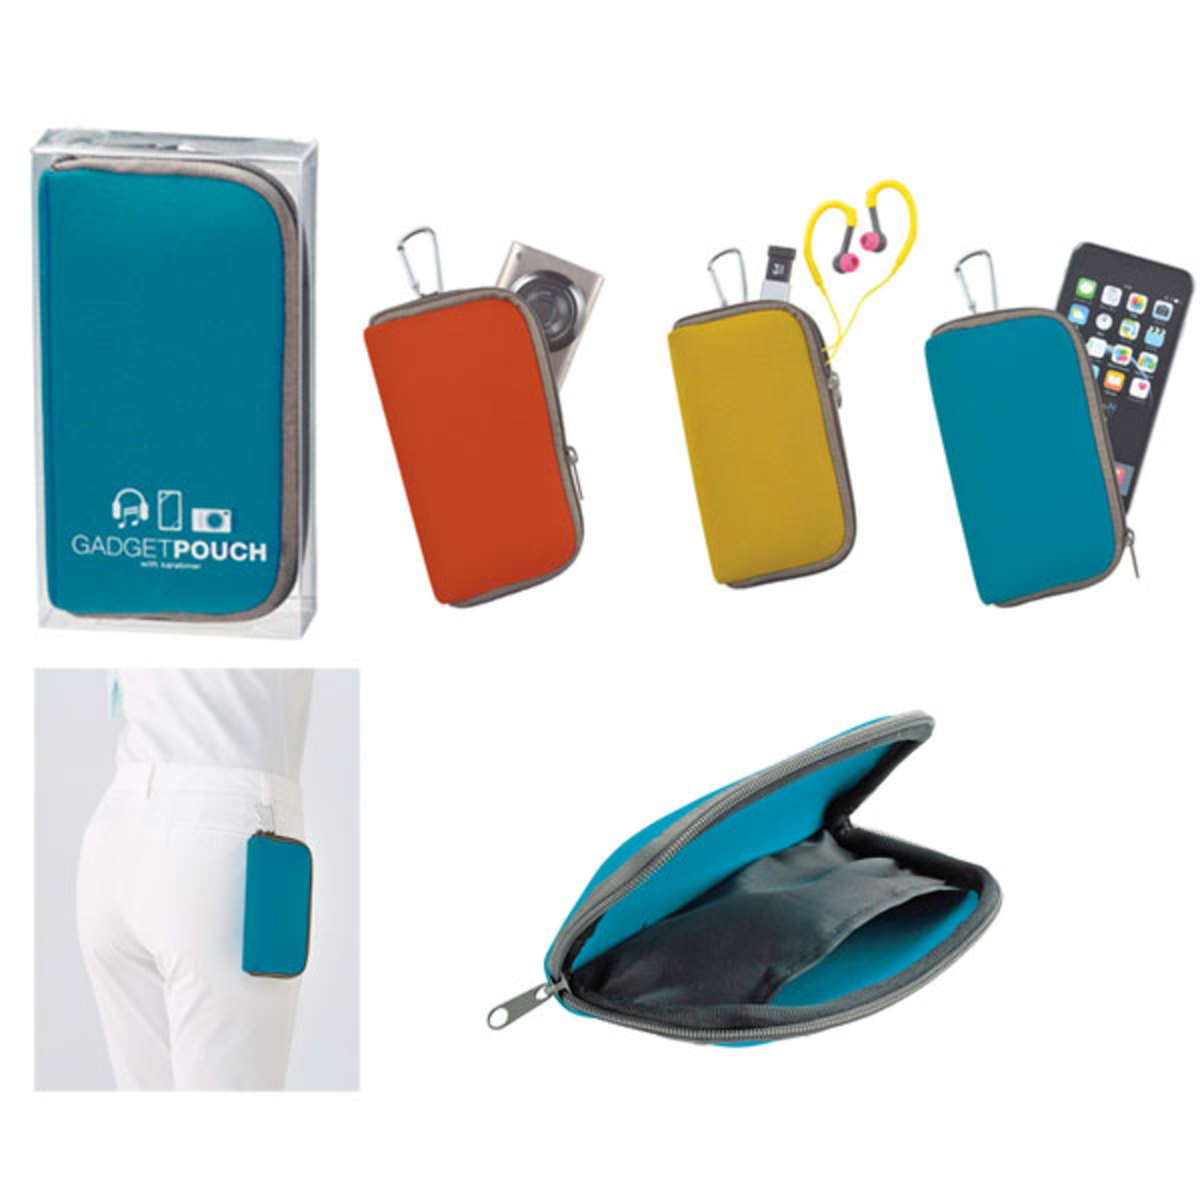 (Blue) Japan Gadget Pouch/Sumaho Pouch w/ Carabiner